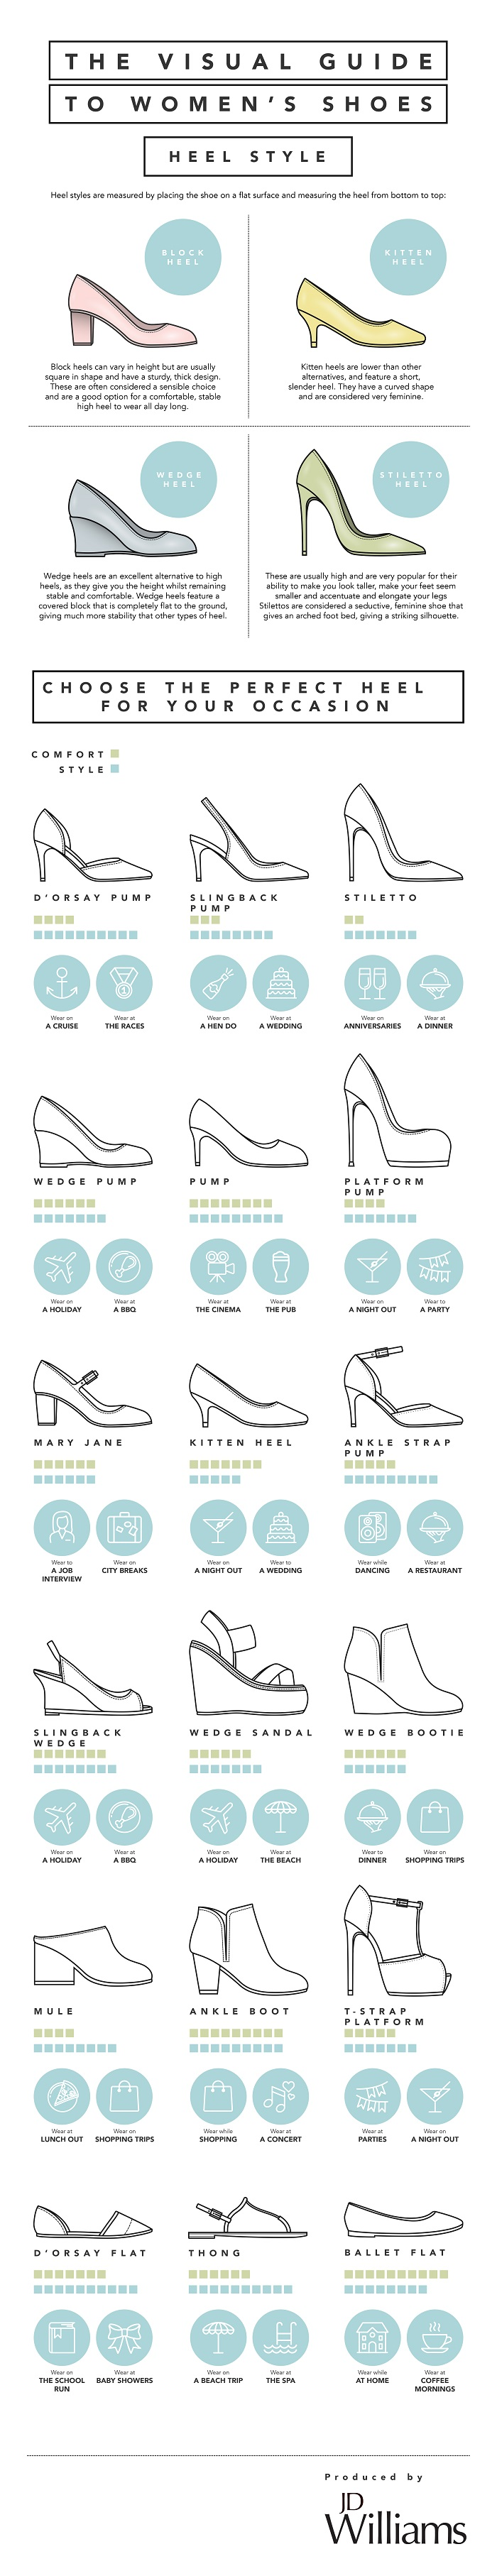 Footwear-infographic-700